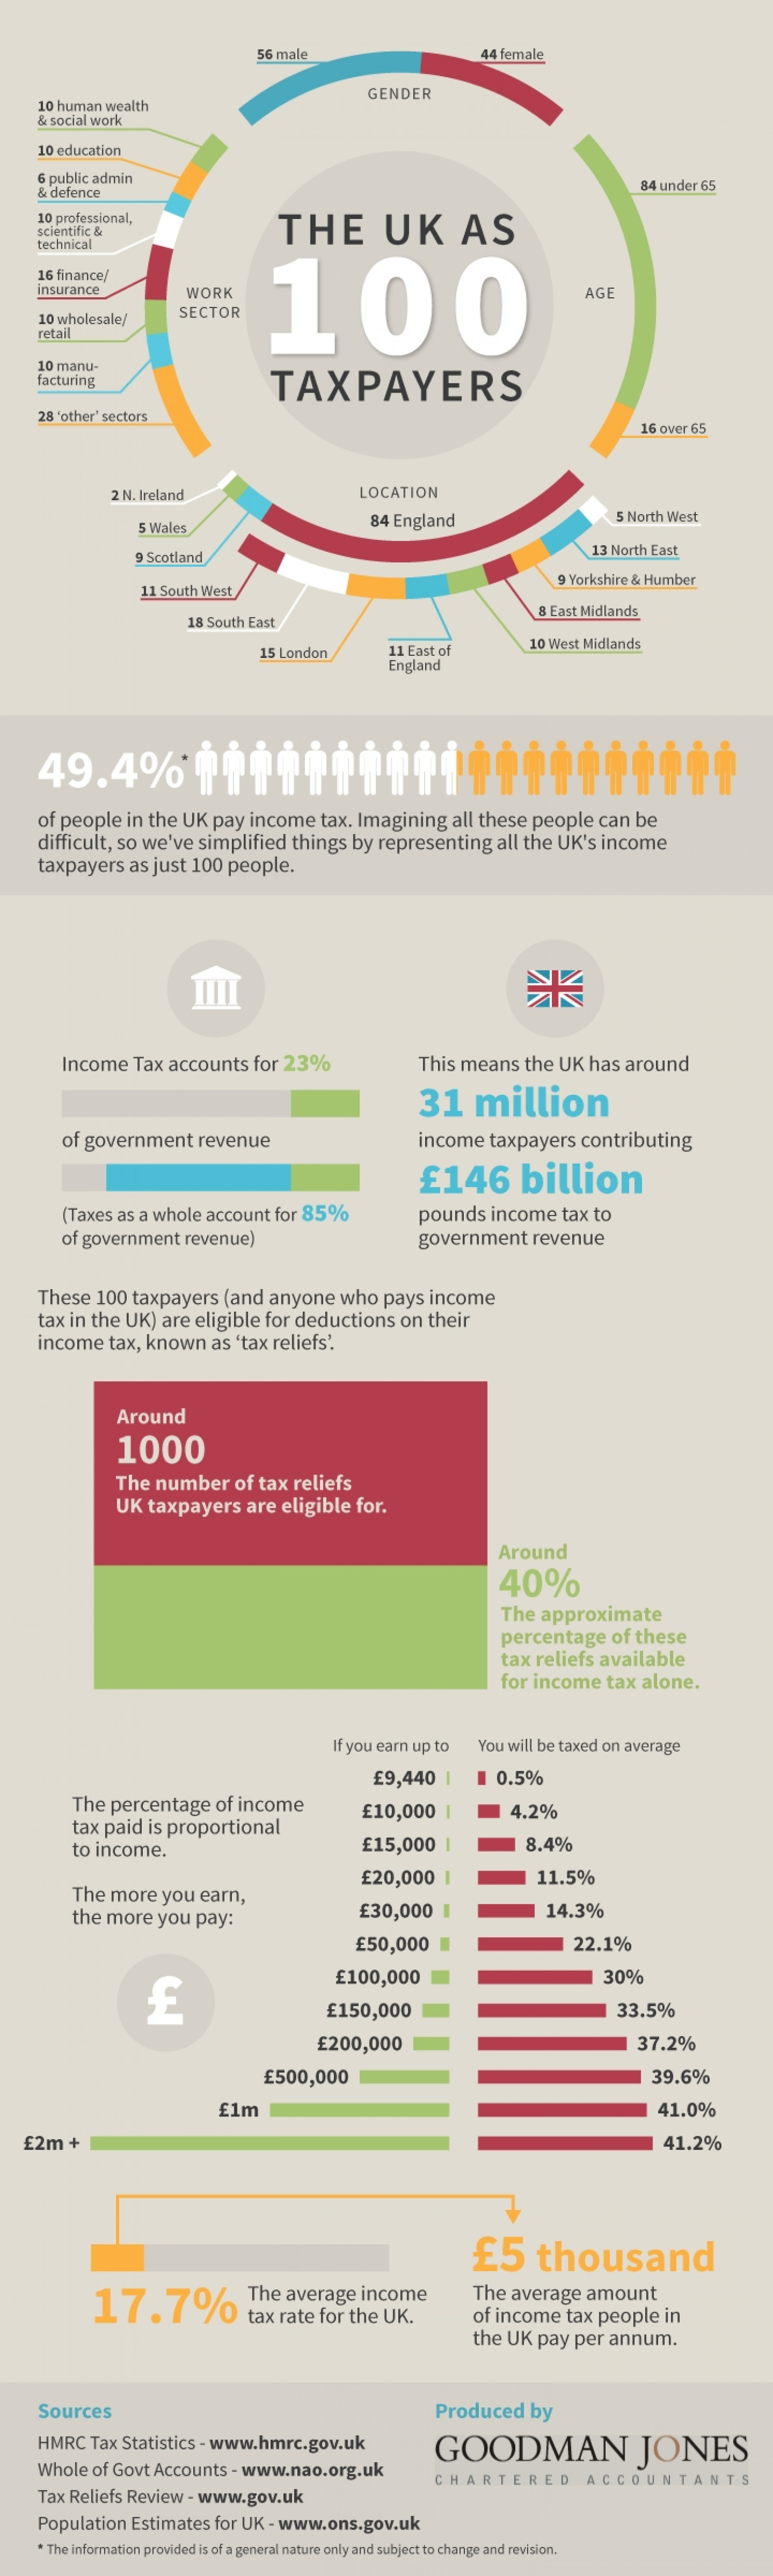 The UK as 100 taxpayers Infographic